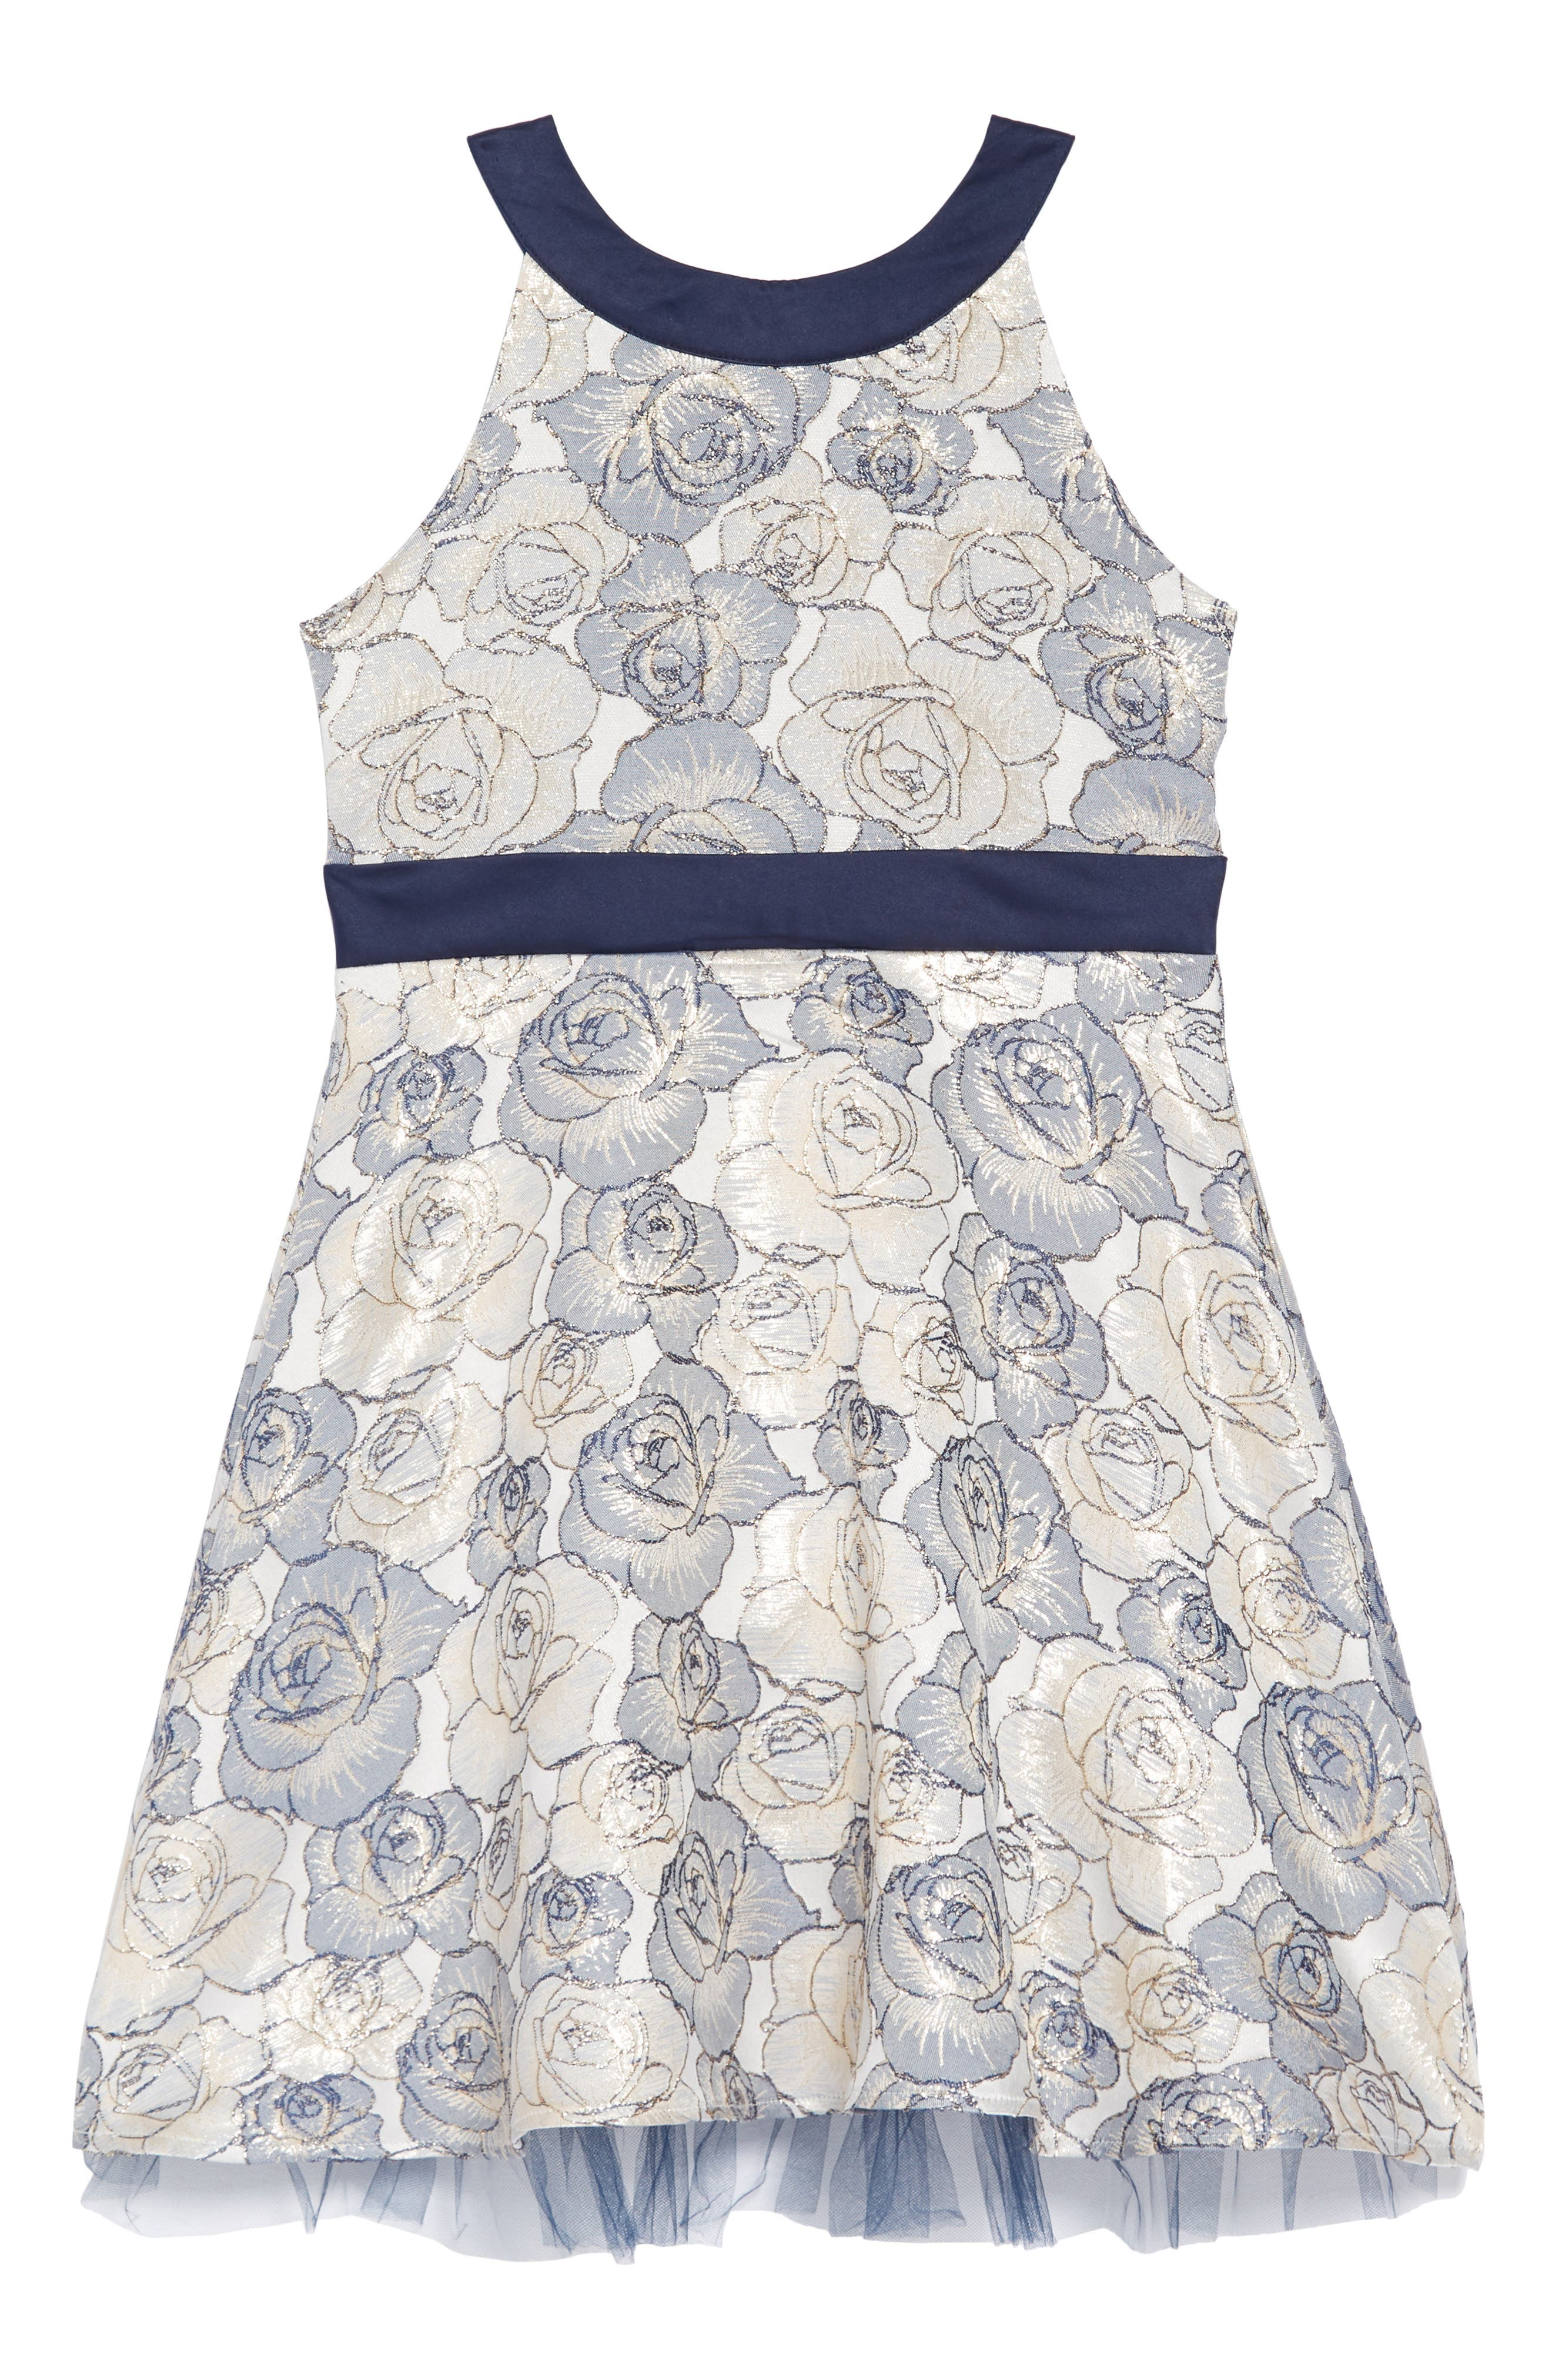 Floral Brocade Fit & Flare Dress,                             Main thumbnail 1, color,                             NAVY/GOLD